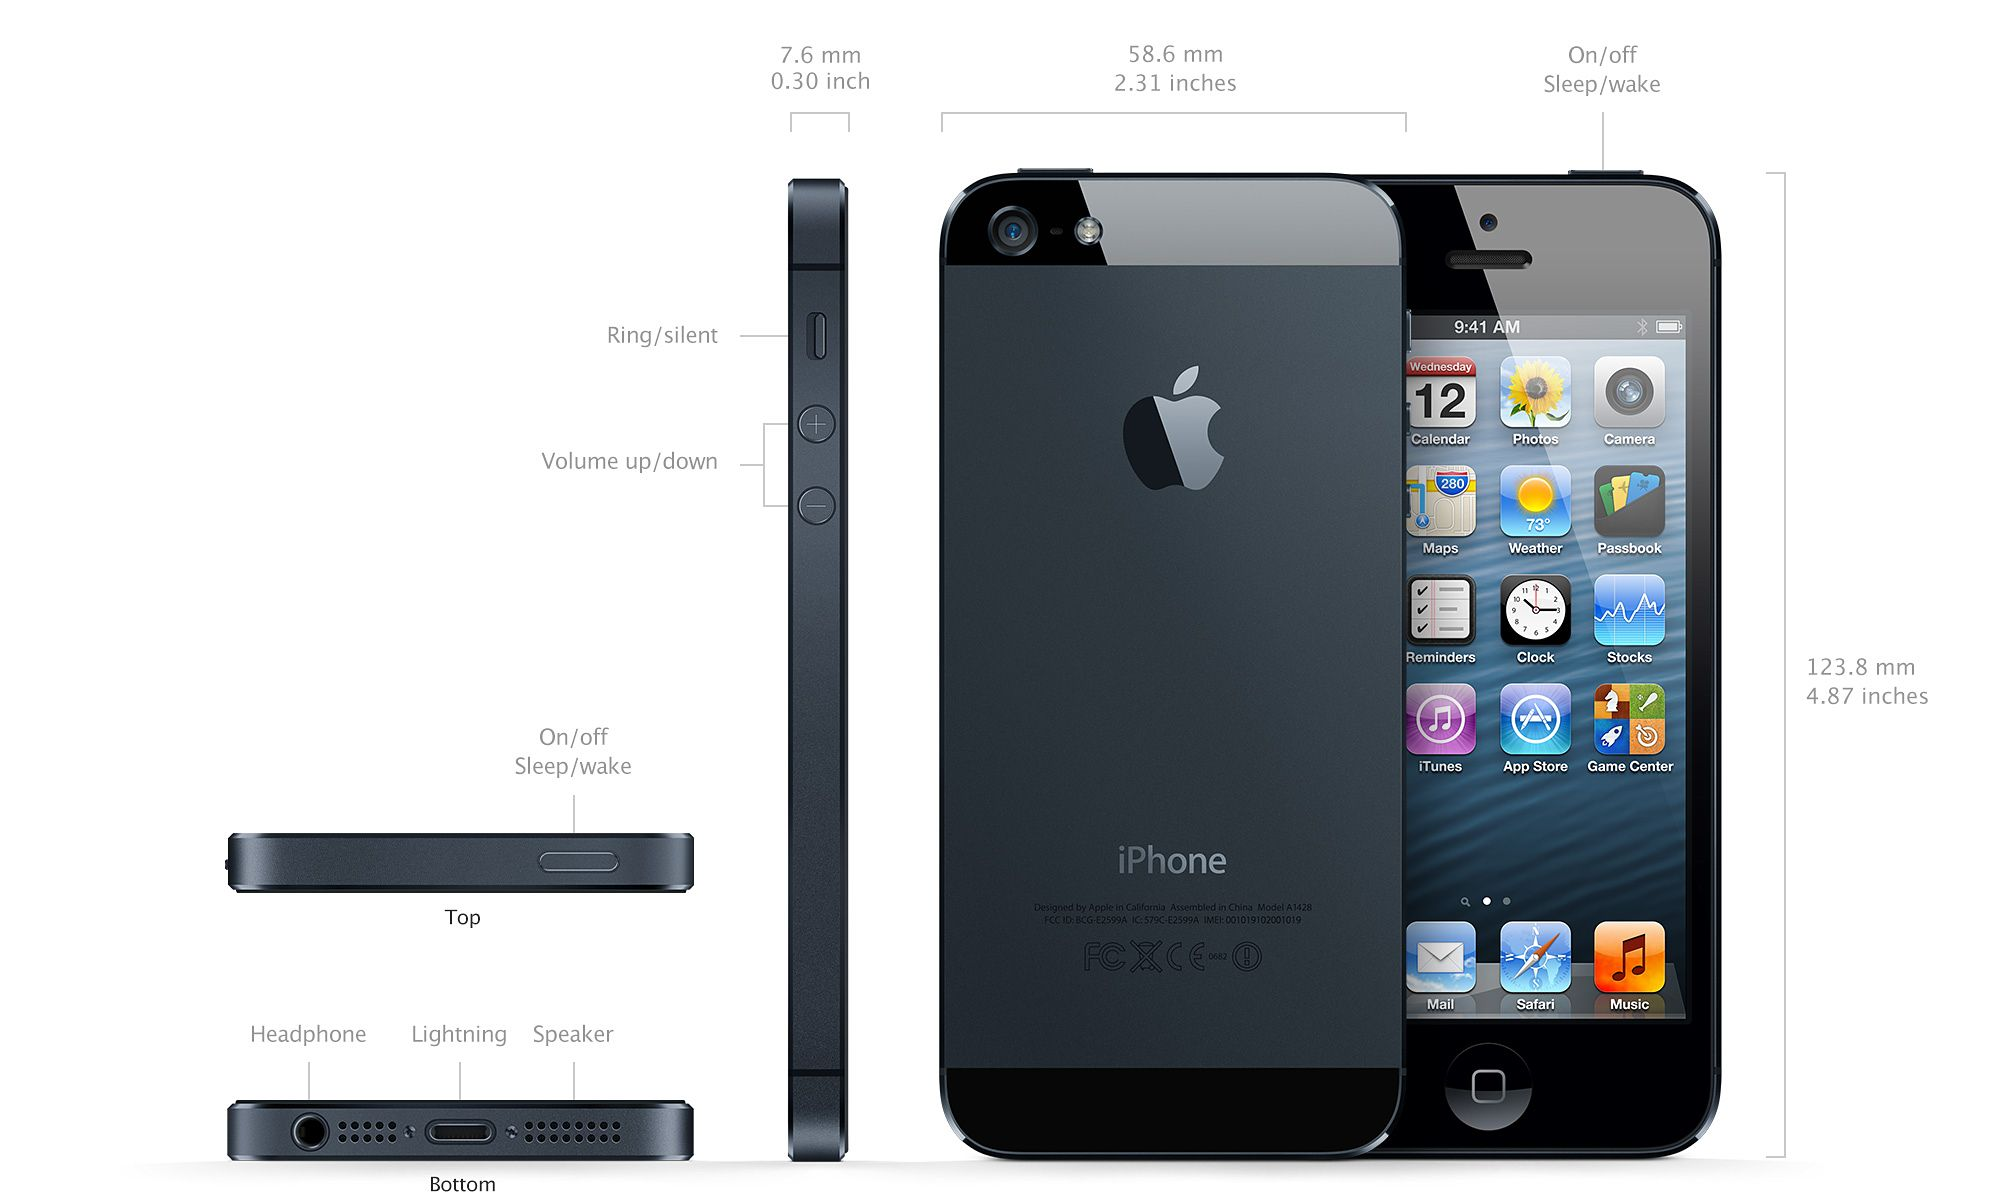 Iphone A6 Chip Iphone 5 Specs